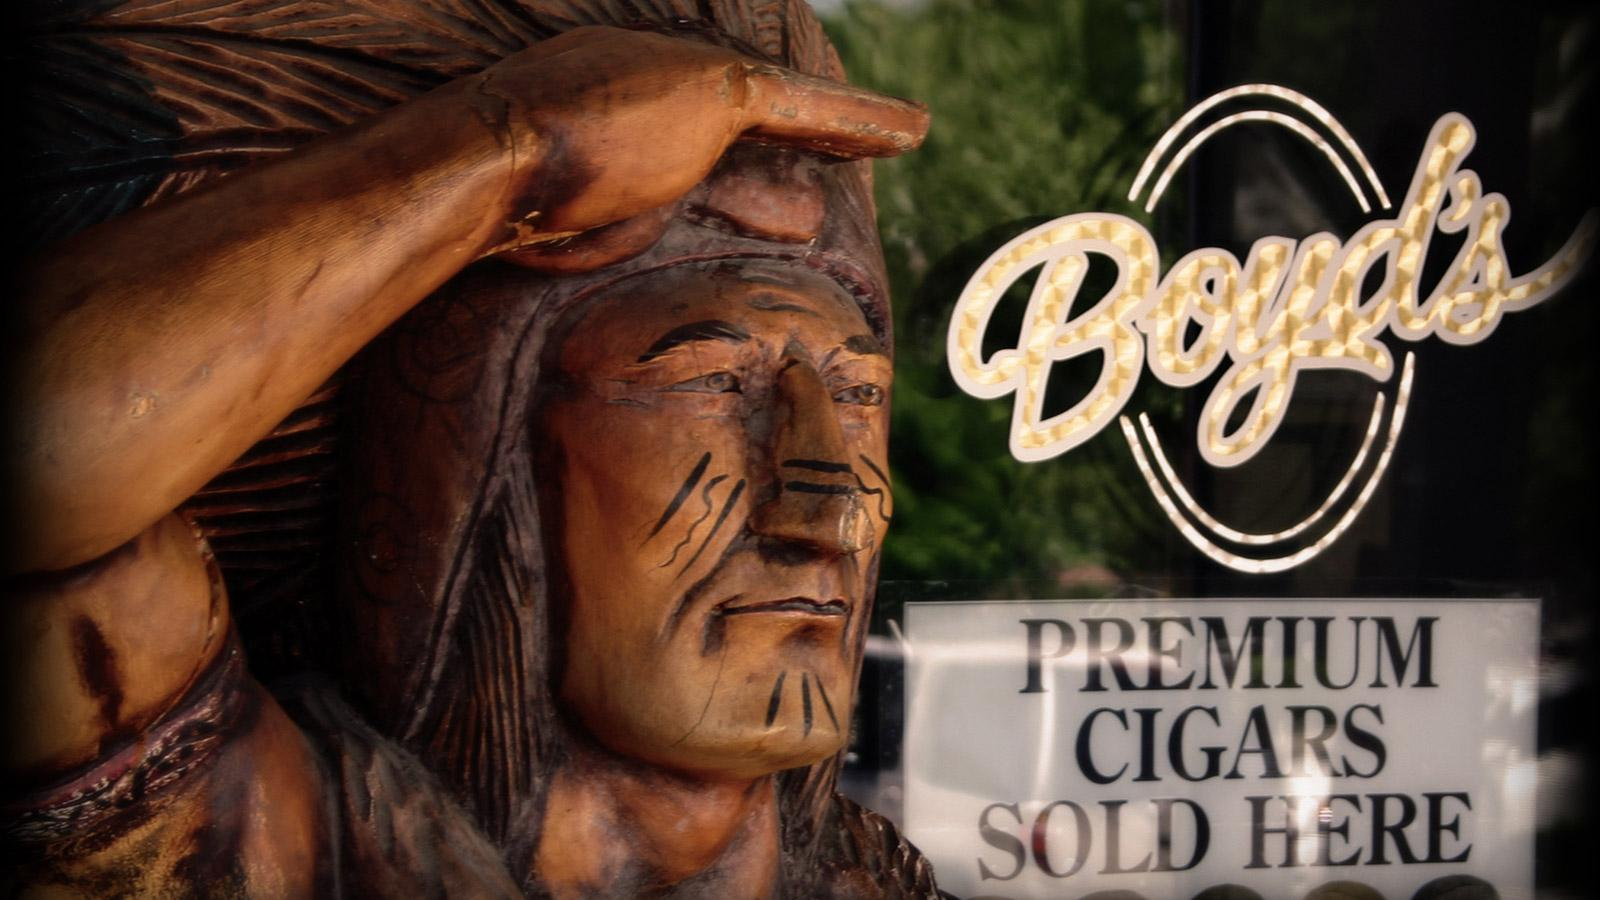 Where To Smoke: Boyd's Tobacco & Elegant Gifts, Paso Robles, California